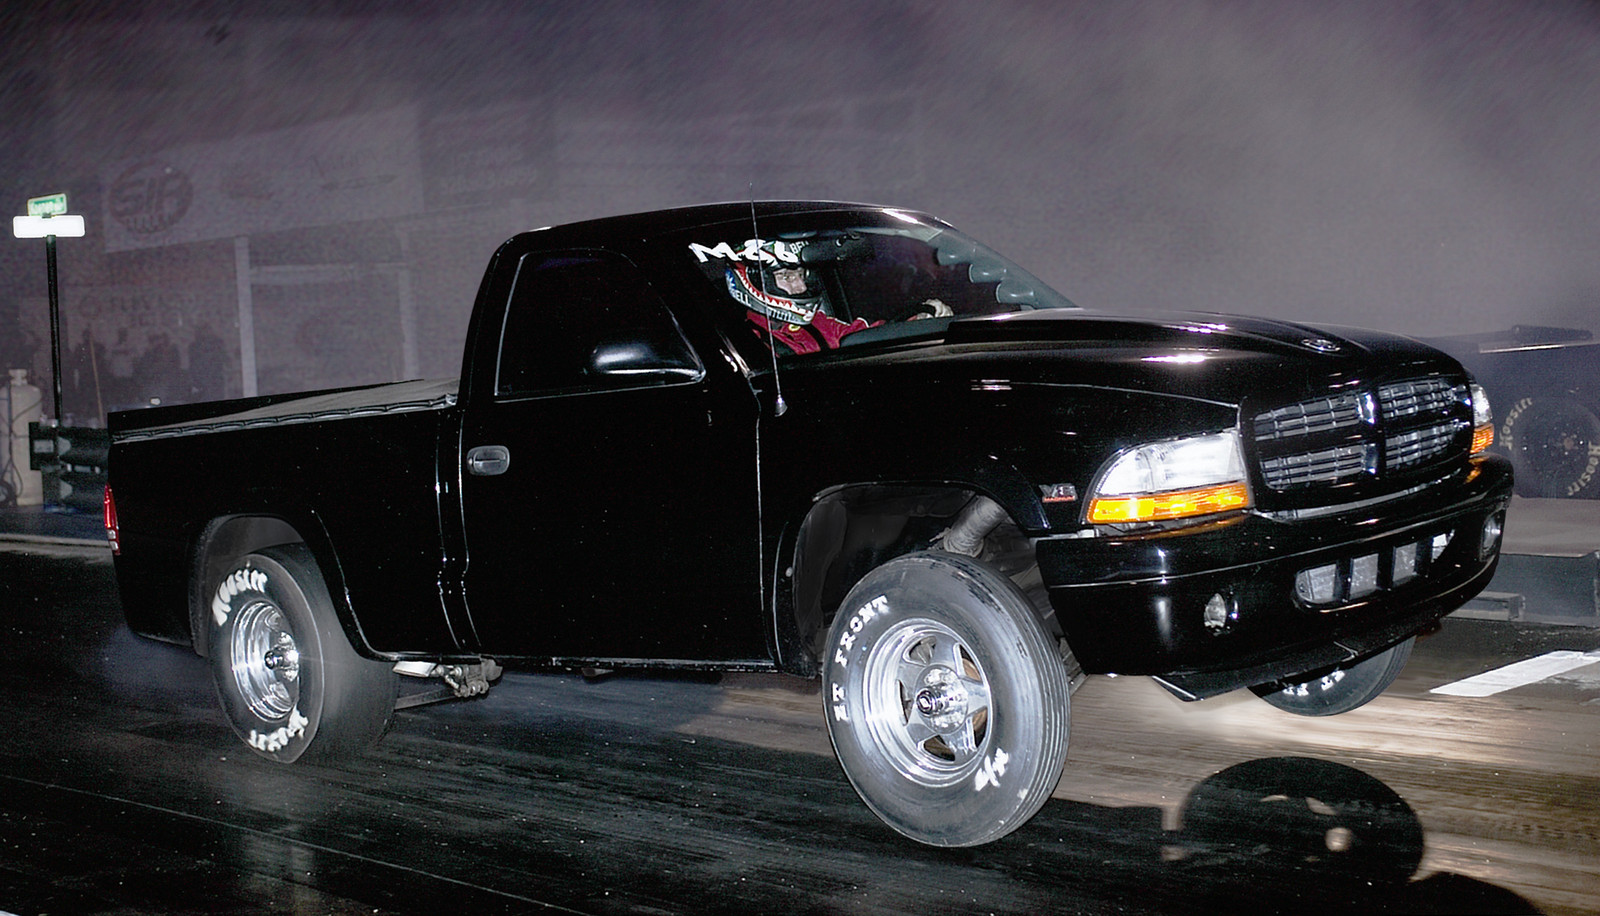 1999 Black Dodge Dakota R/T RC Turbo picture, mods, upgrades